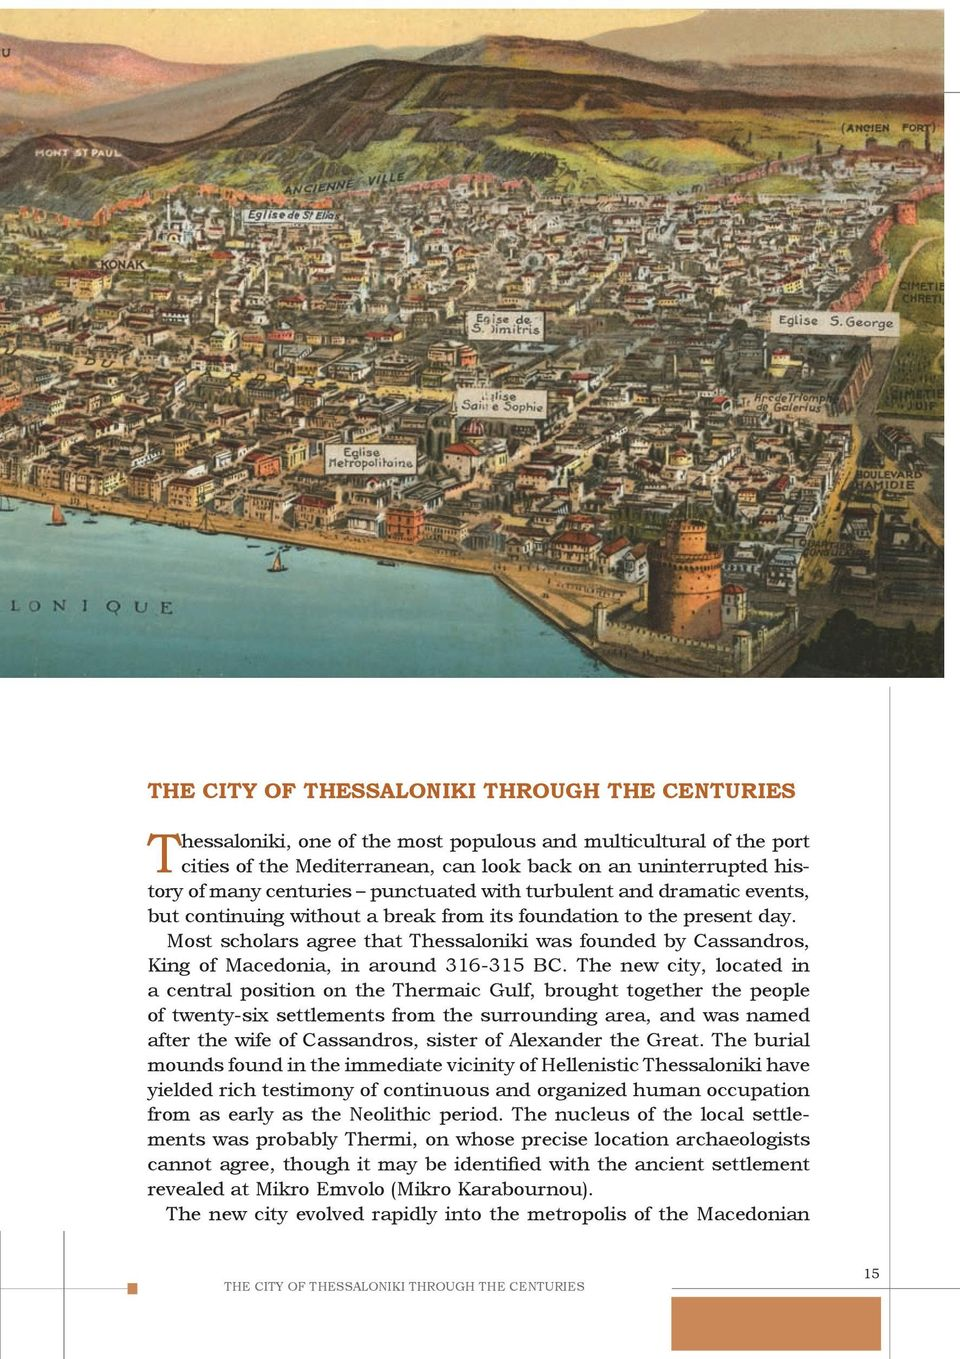 Most scholars agree that Thessaloniki was founded by Cassandros, King of Macedonia, in around 316-315 BC.